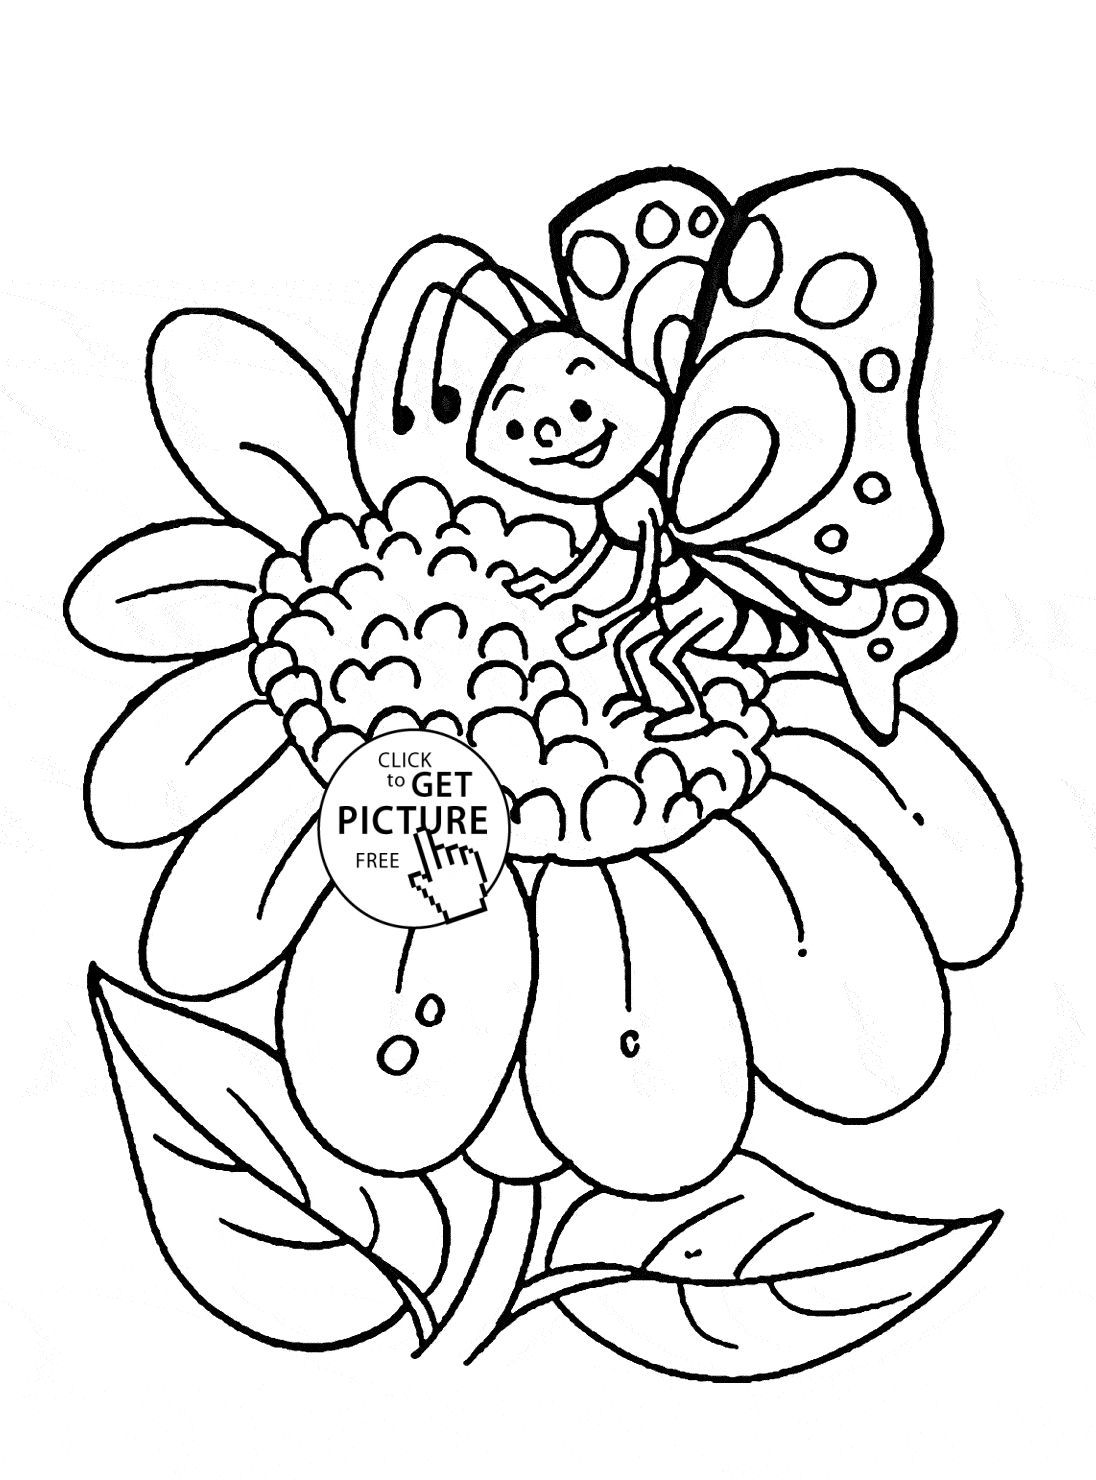 Butterfly Coloring Page Sunflower And Cute Butterfly Coloring Page For Kids Flower Img Free Entitlementtrap Com Butterfly Coloring Page Sunflower Coloring Pages Valentines Day Coloring Page [ 1480 x 1096 Pixel ]